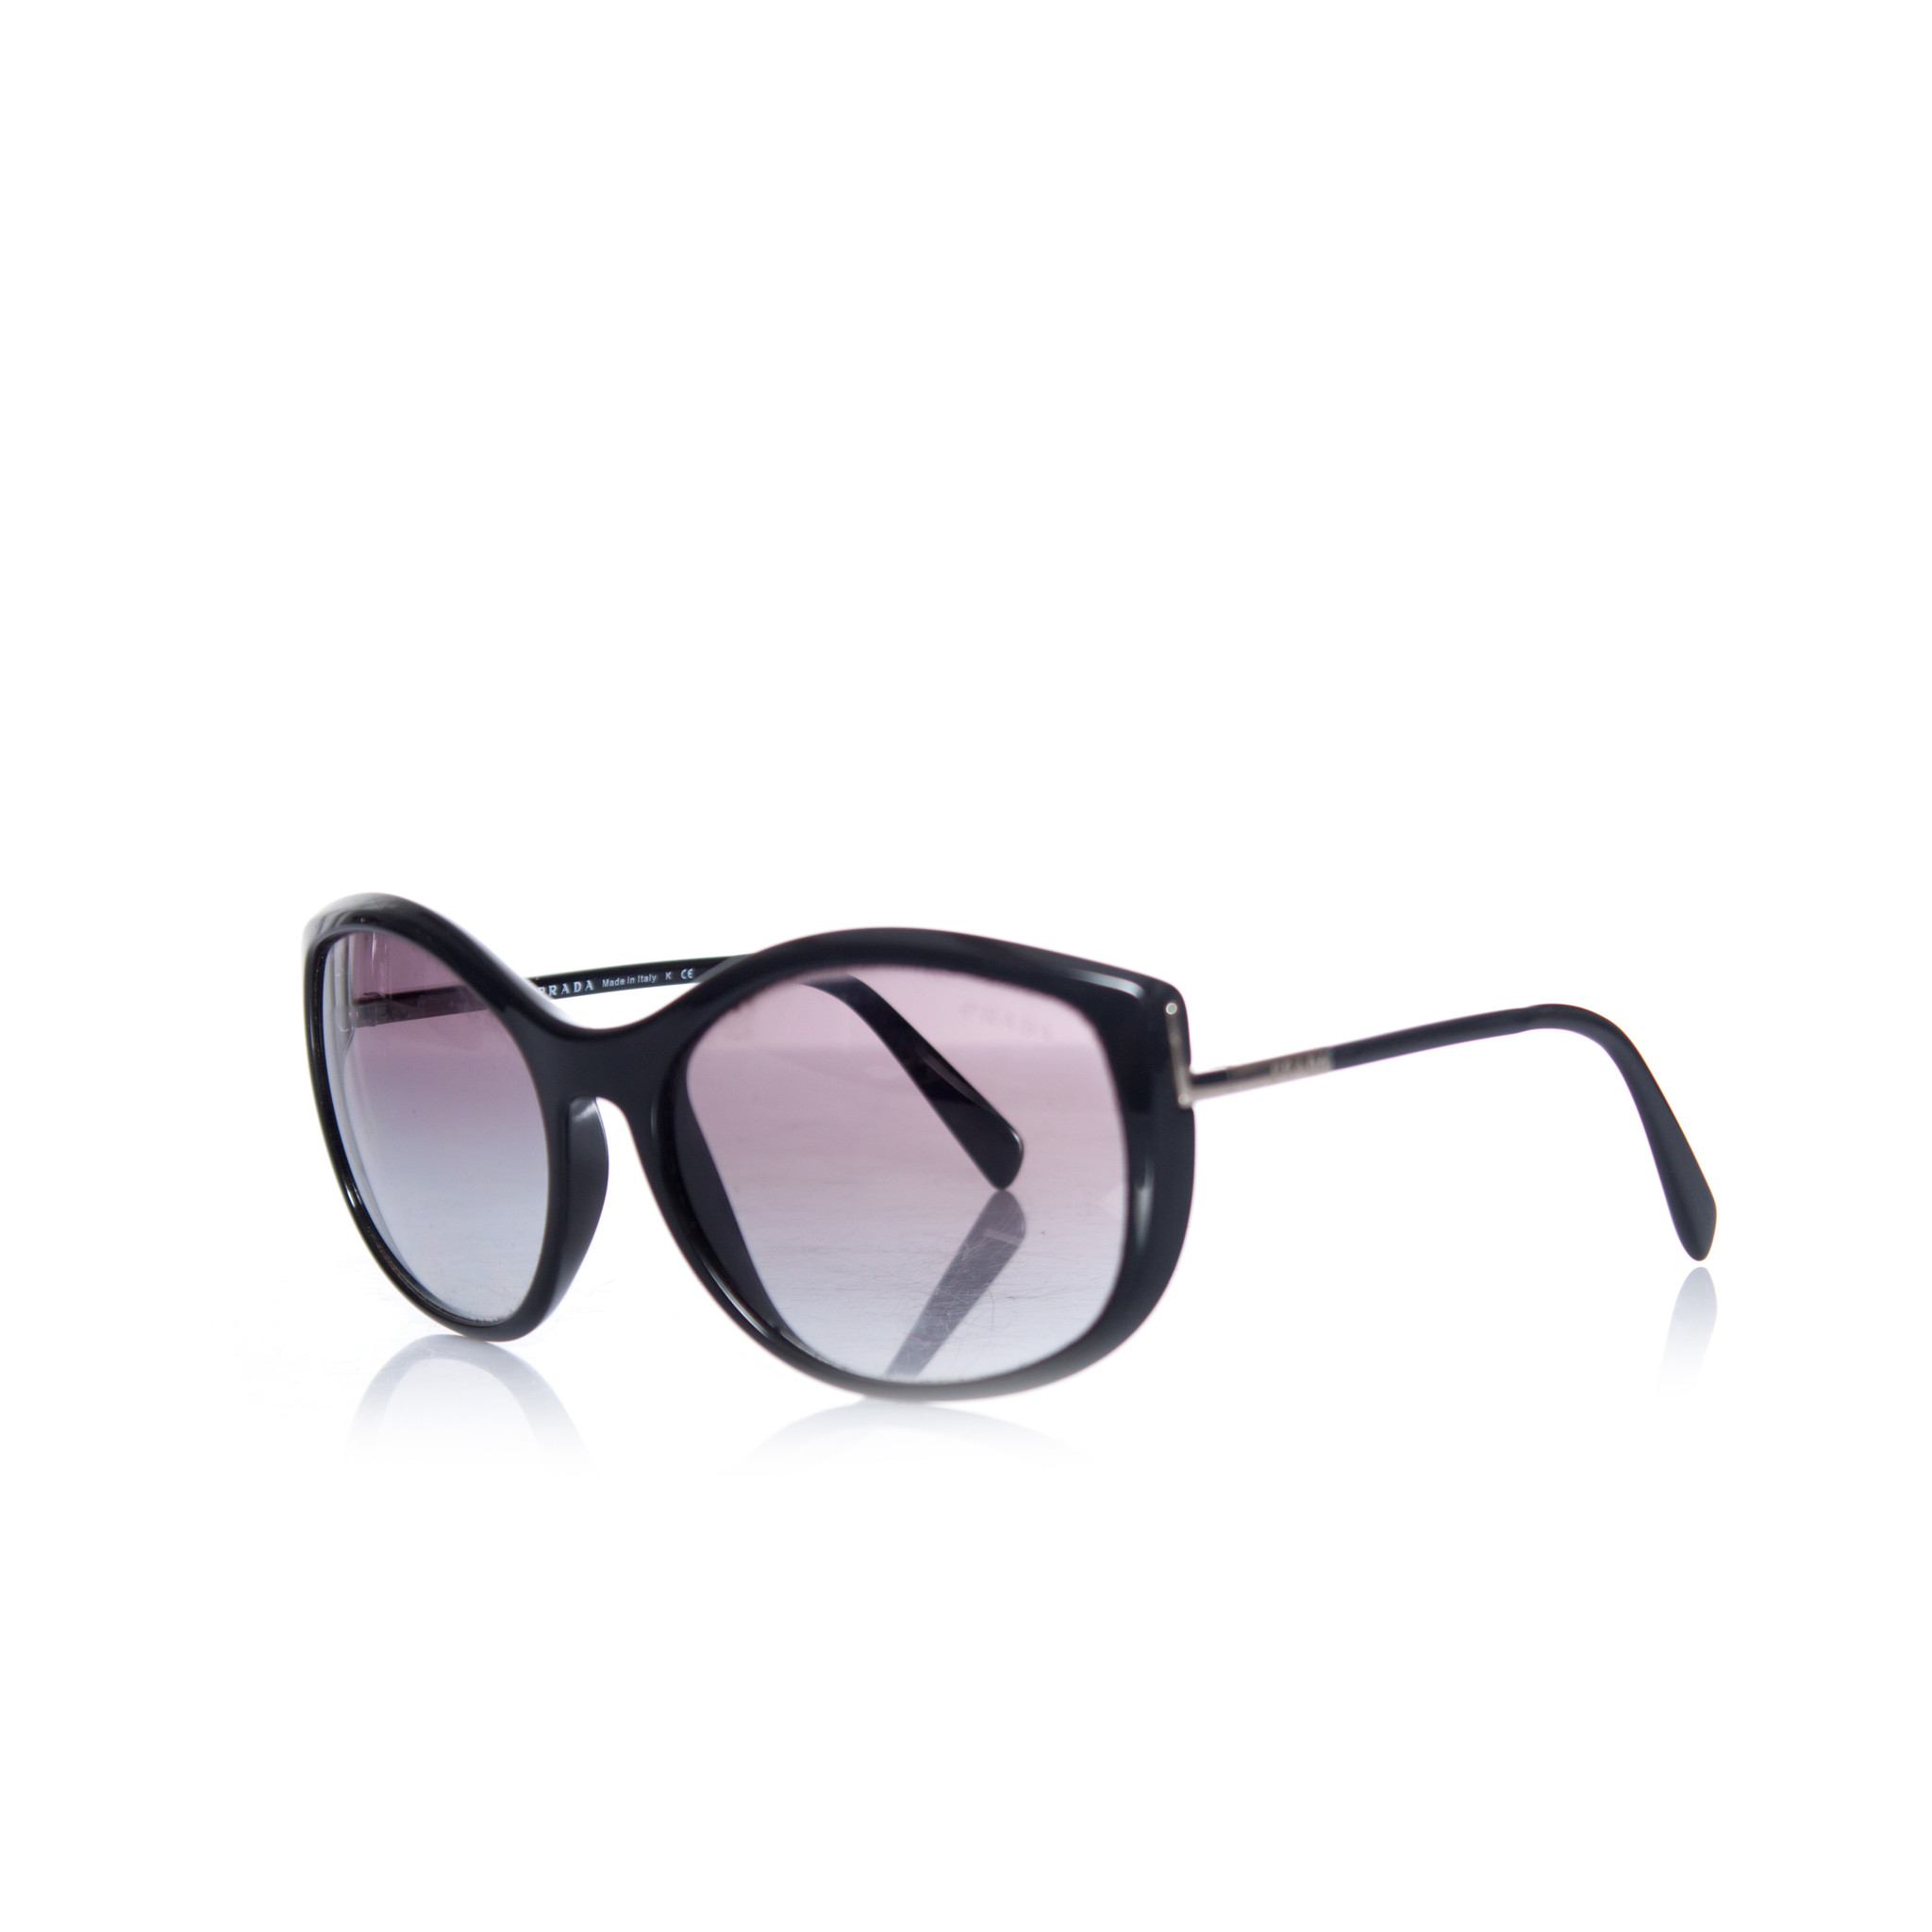 46568a2355 Prada, Black sunglasses. This item has 2 scratches on the left lens further  in good condition.